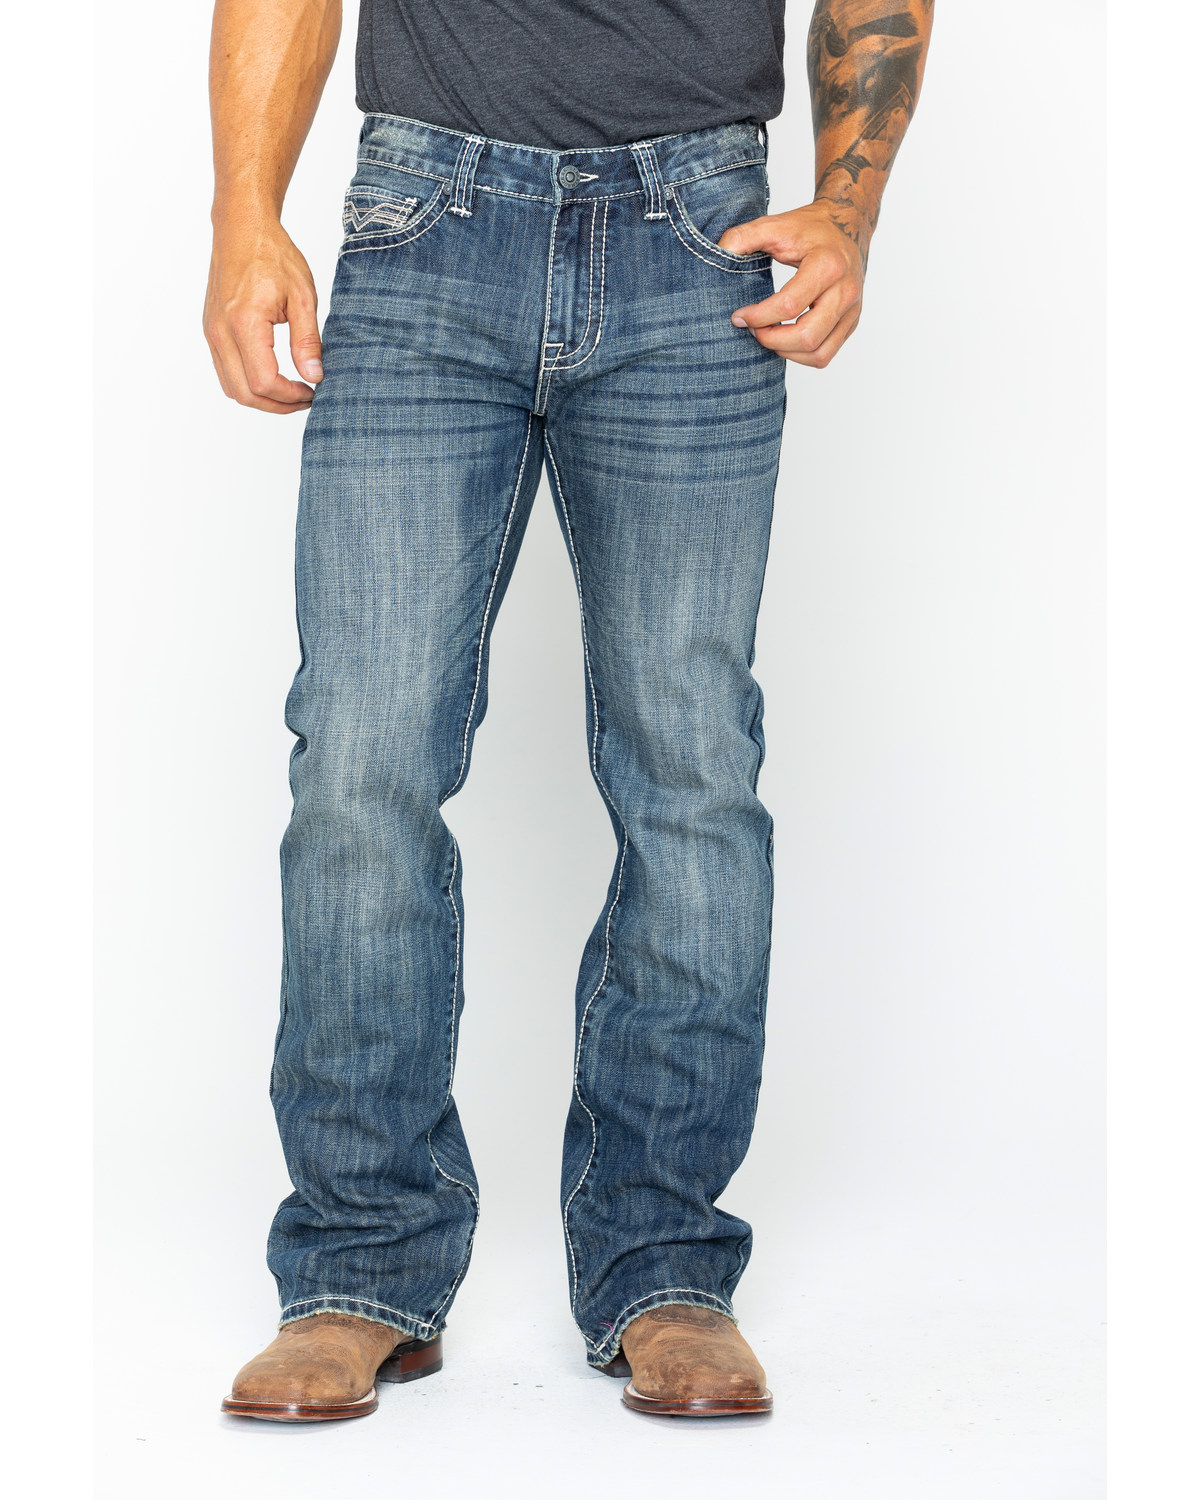 Mens Bootcut Jeans With Boots